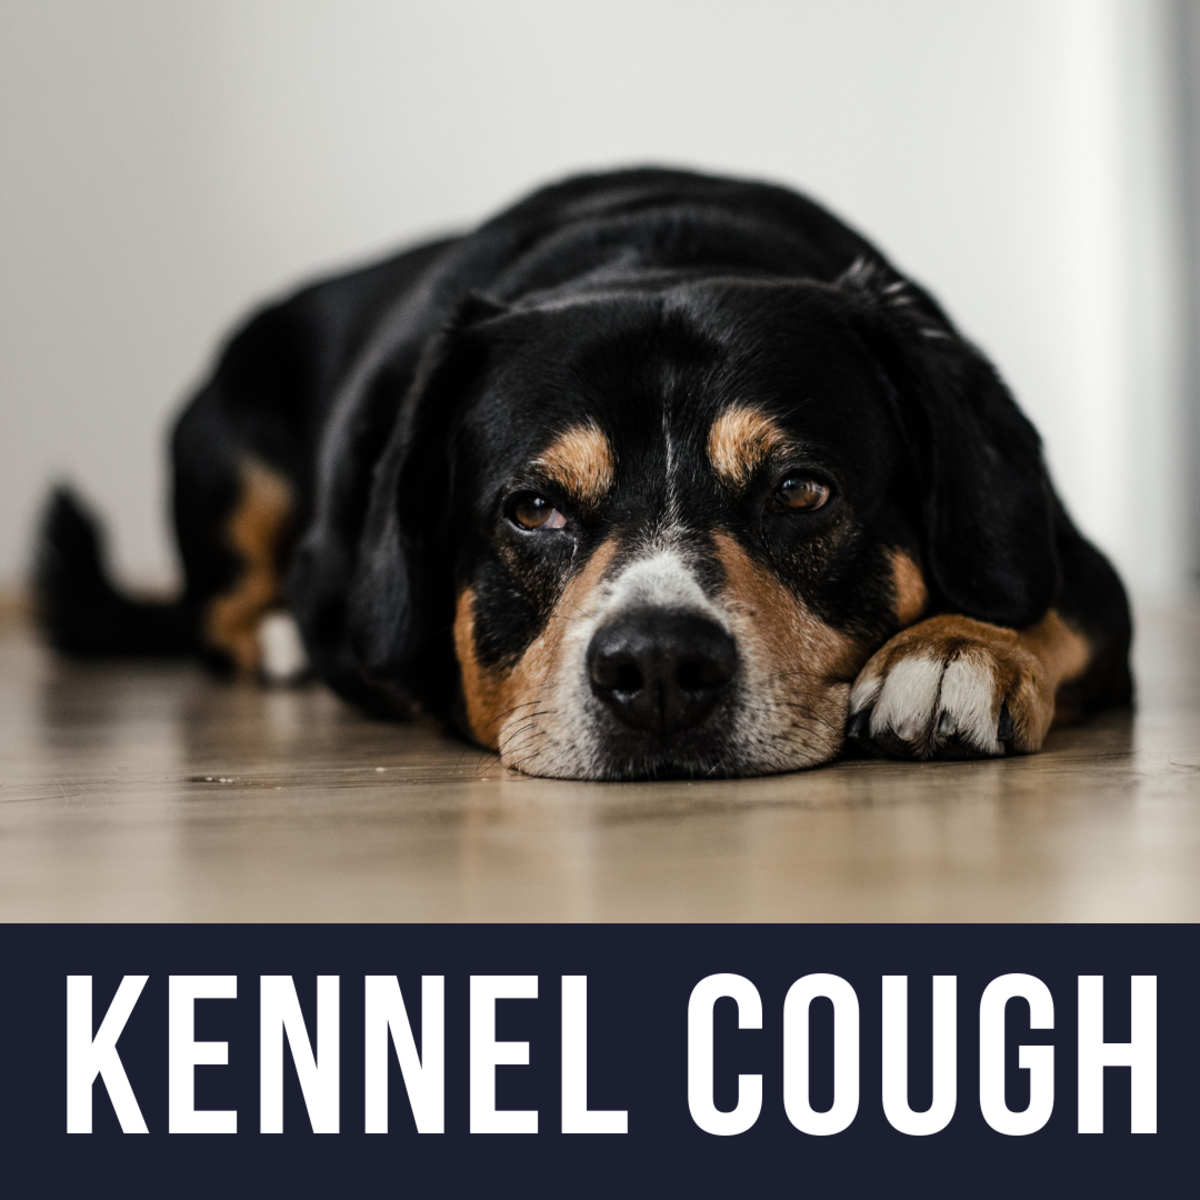 My Dog Has Kennel Cough: What Do I Need to Know?